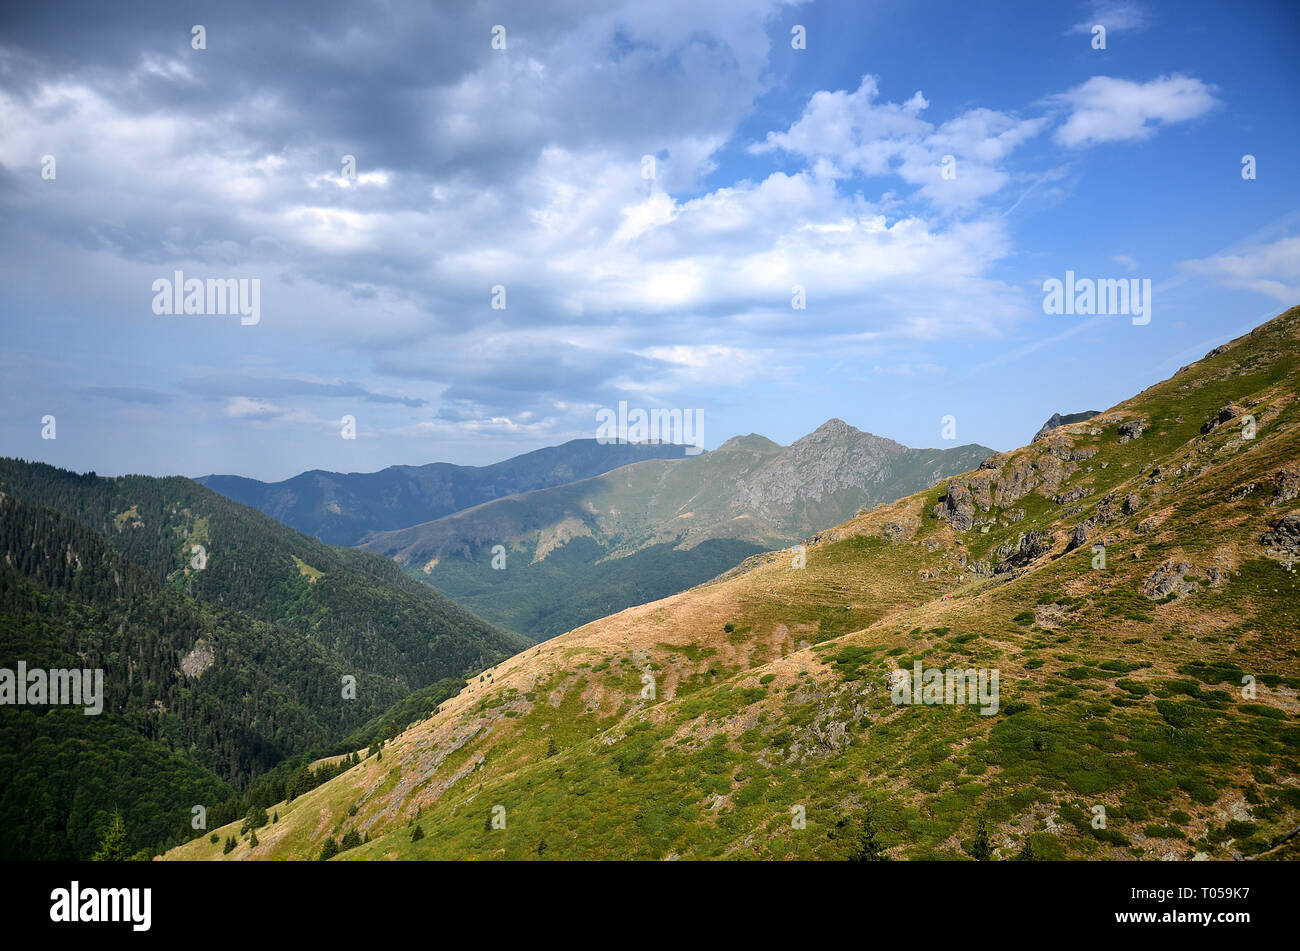 Panoramic view from Old mountain, Bulgaria. Ambaritsa and Kupen peaks in background. Cloudy summer day. - Stock Image